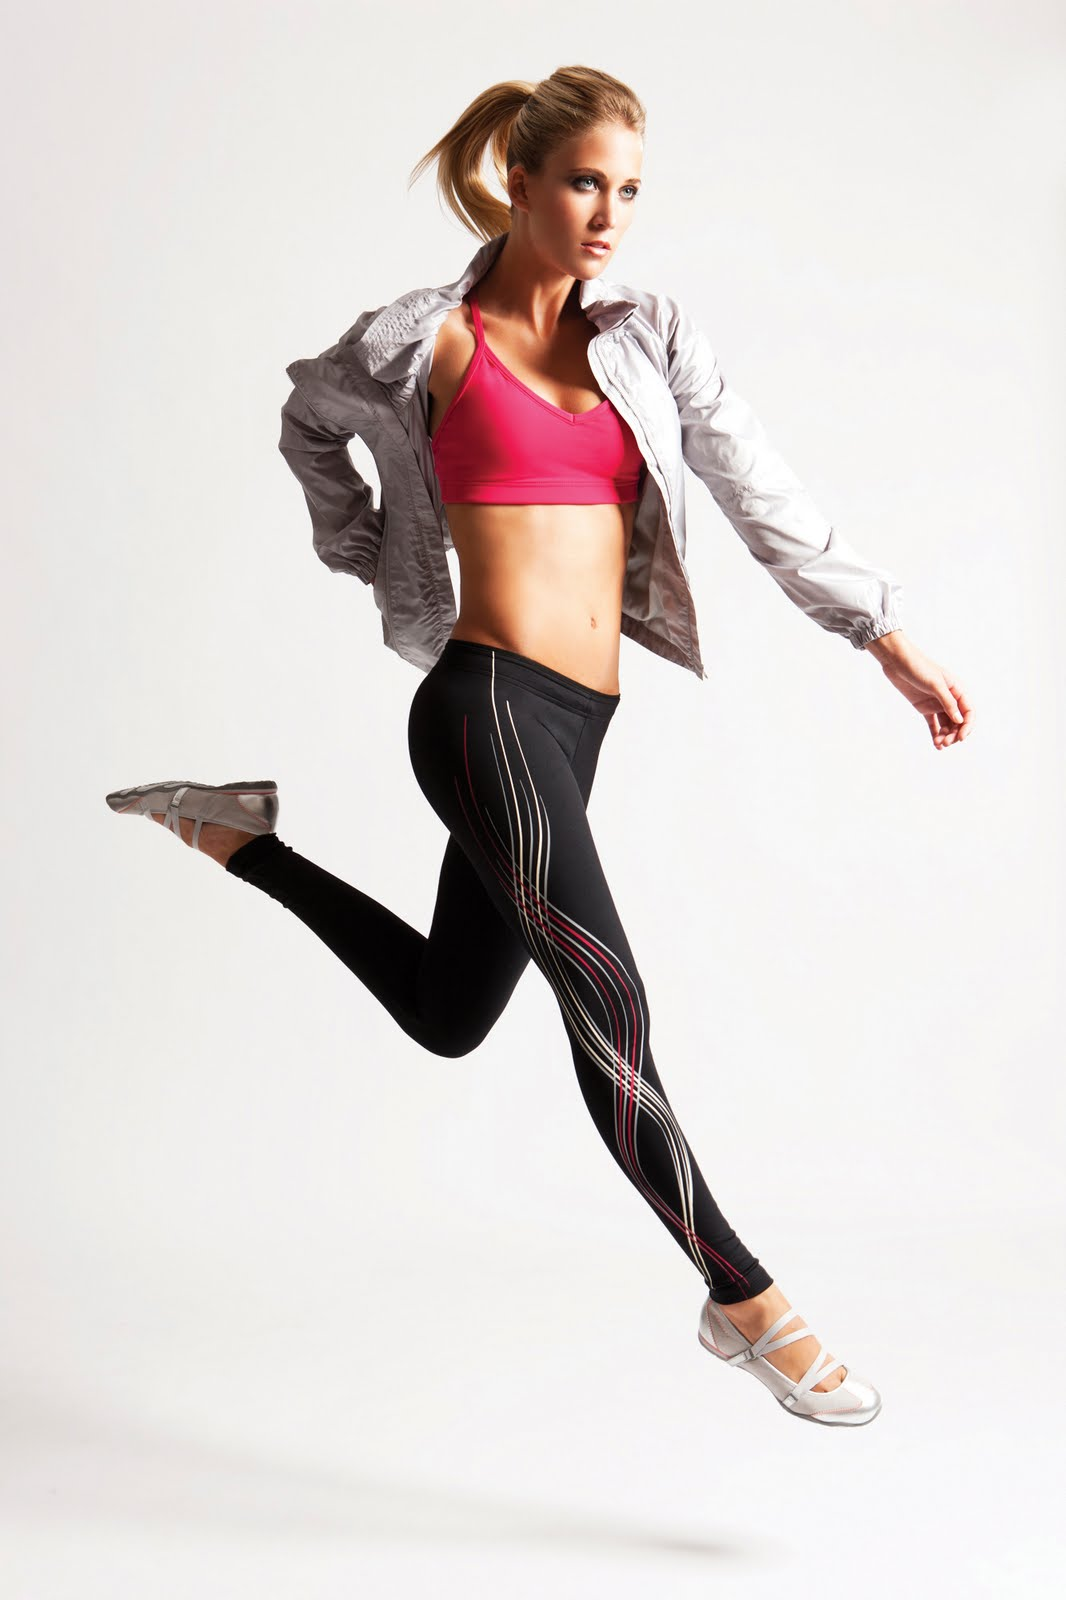 3908bd0532794 Josie s Juice  Lorna Jane   Modern Muse  It s Chic To Be Fit  Competition